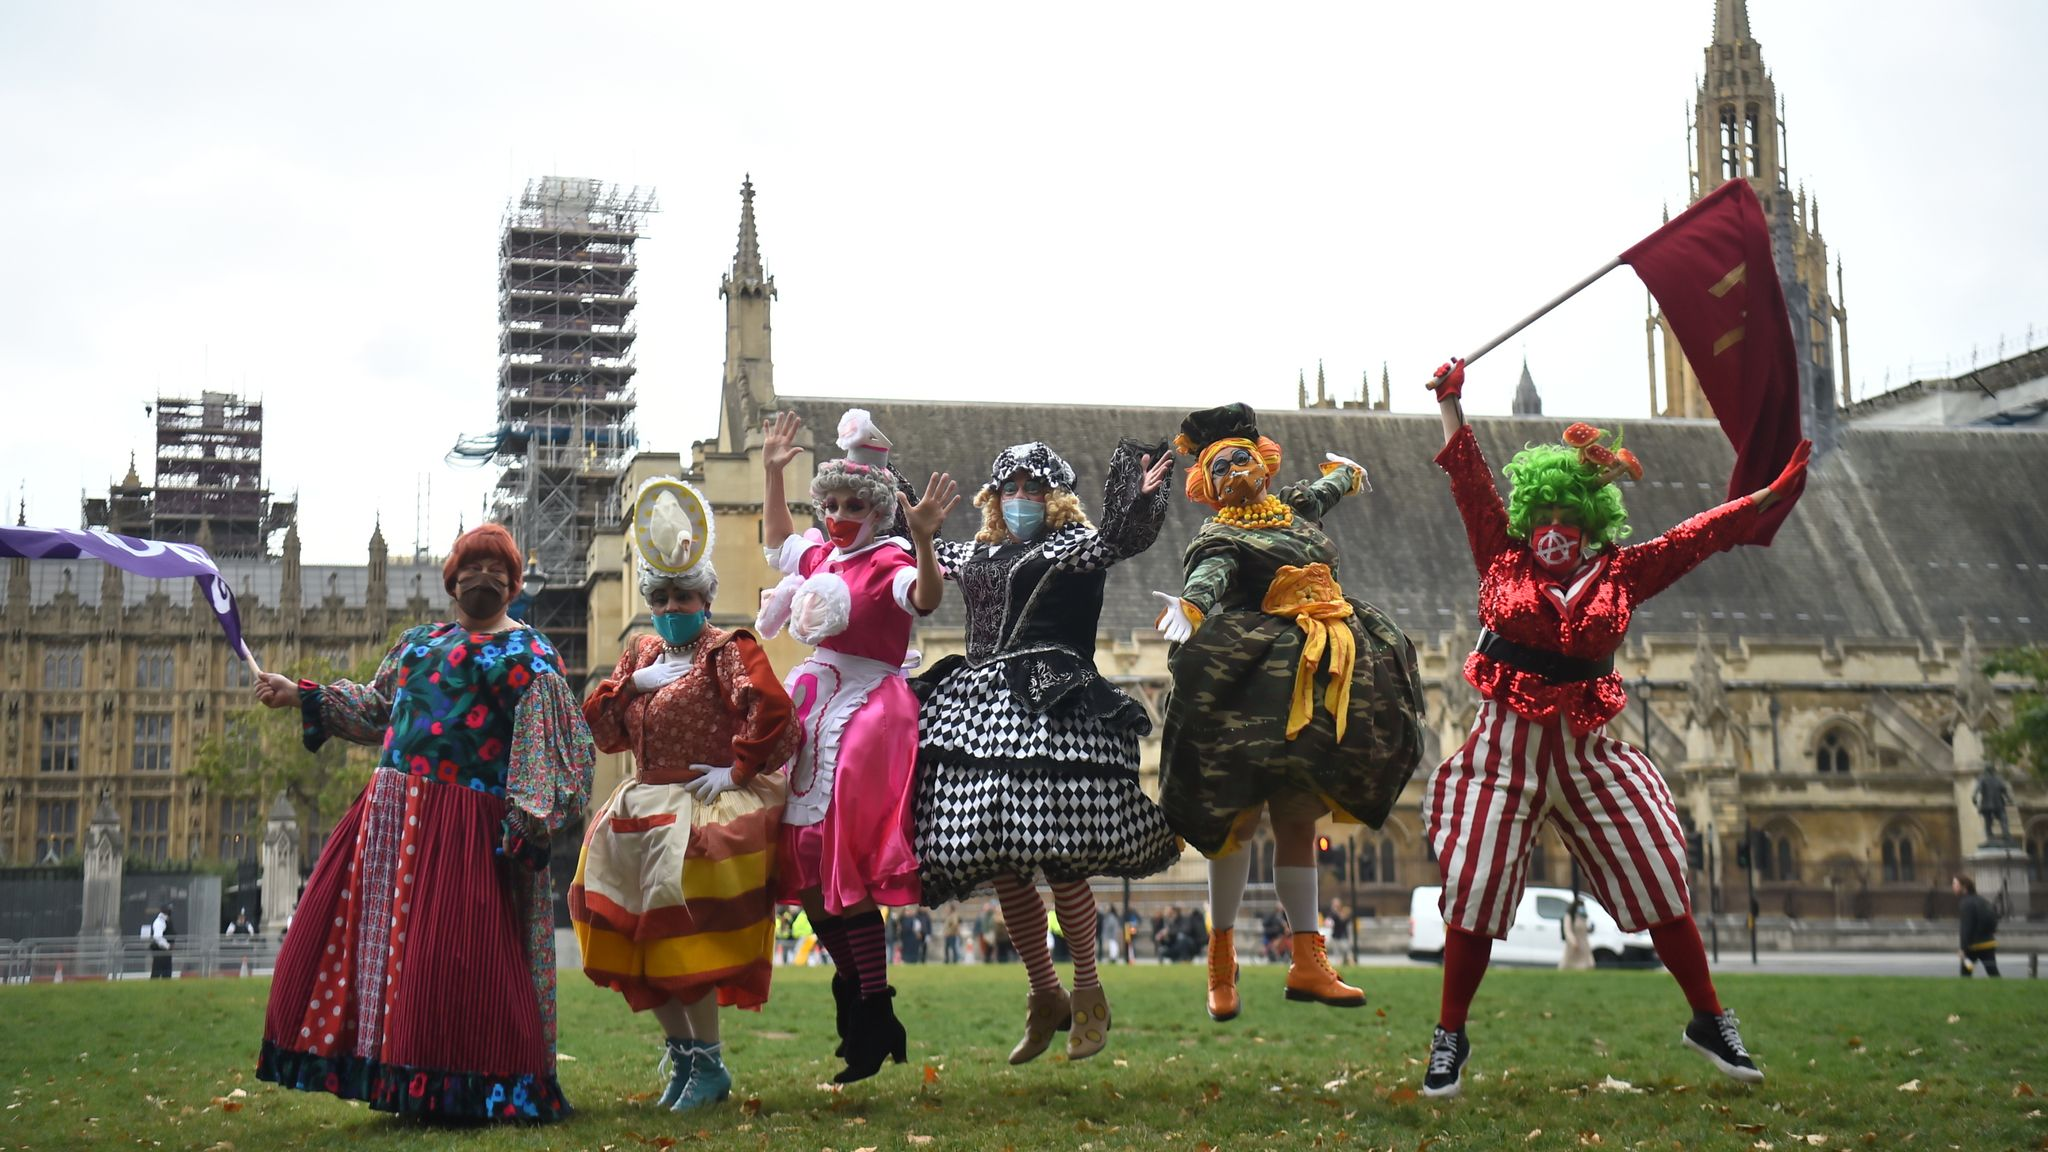 sky.com - Lucy Cotter - Coronavirus: Panto dames demand government help after industry brought 'to its knees